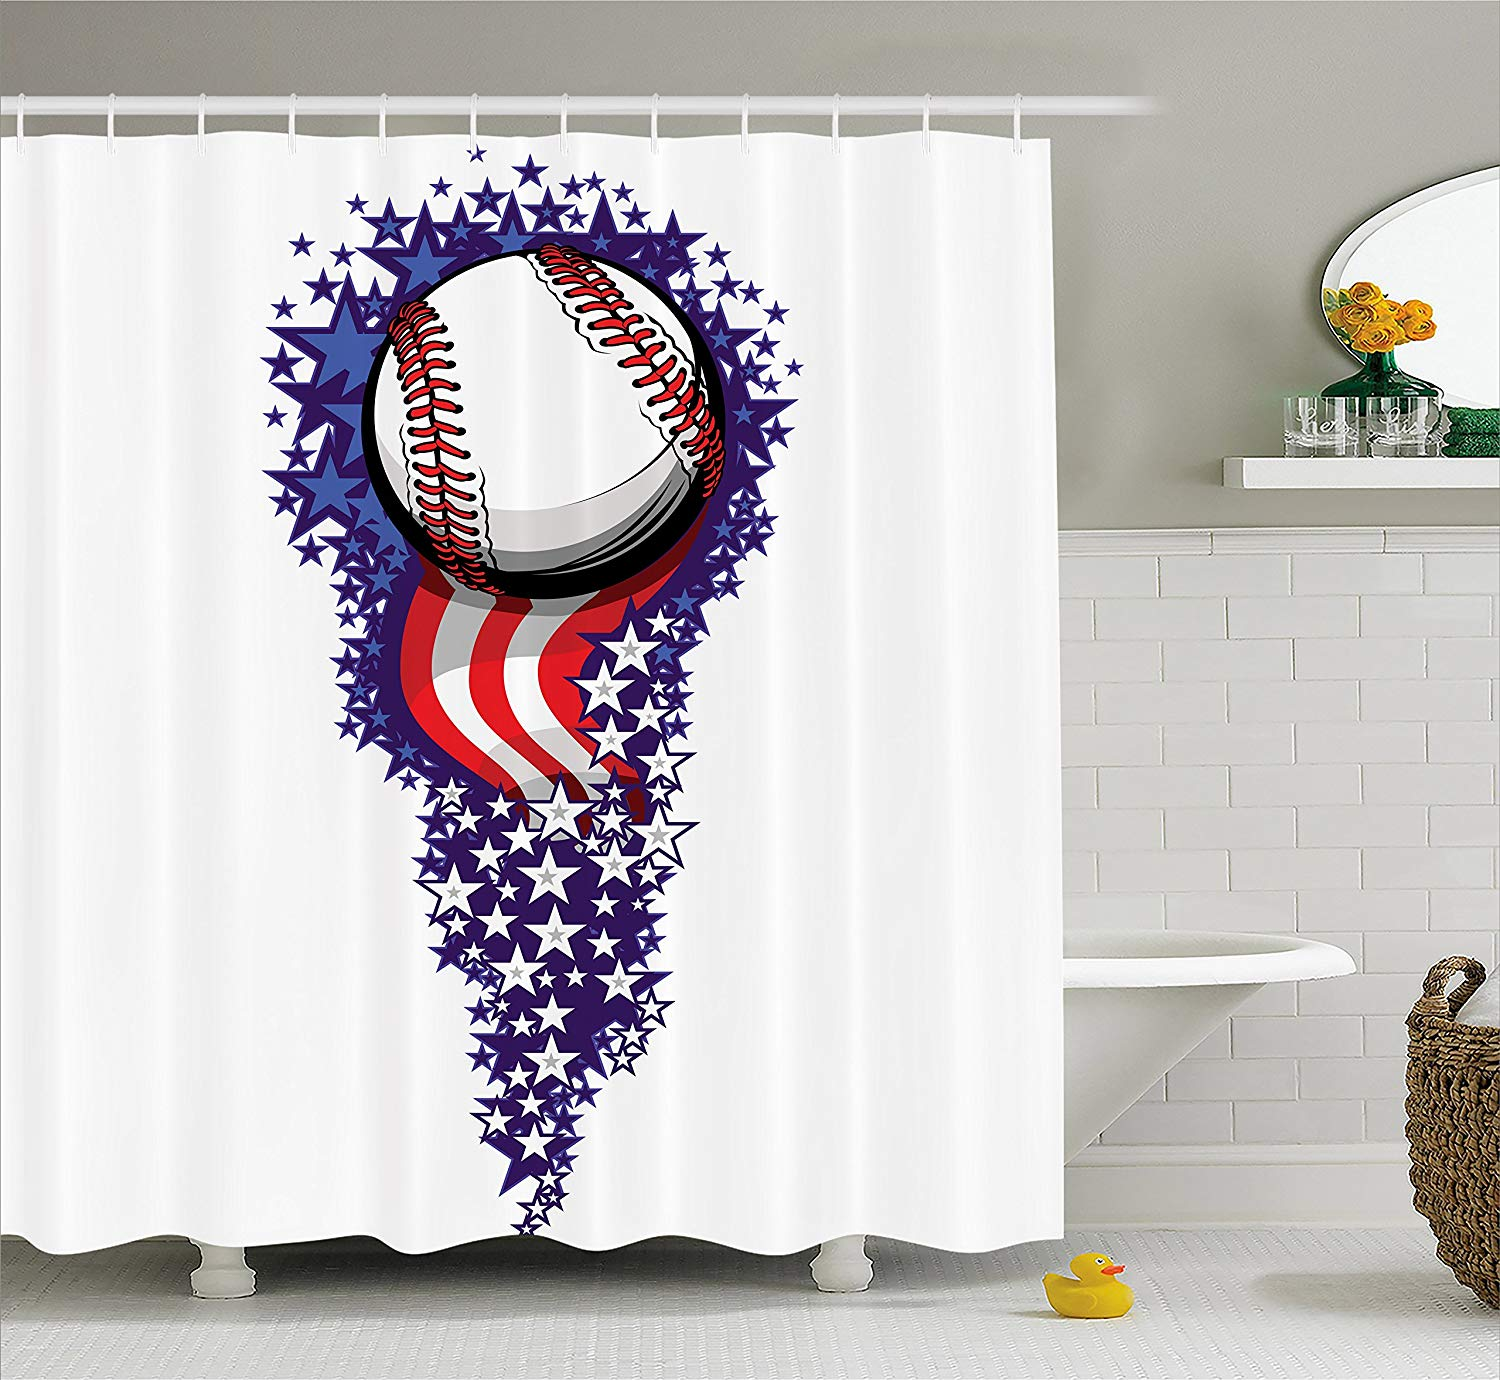 Sports Decor Shower Curtain Stars And Stripes Fireworks